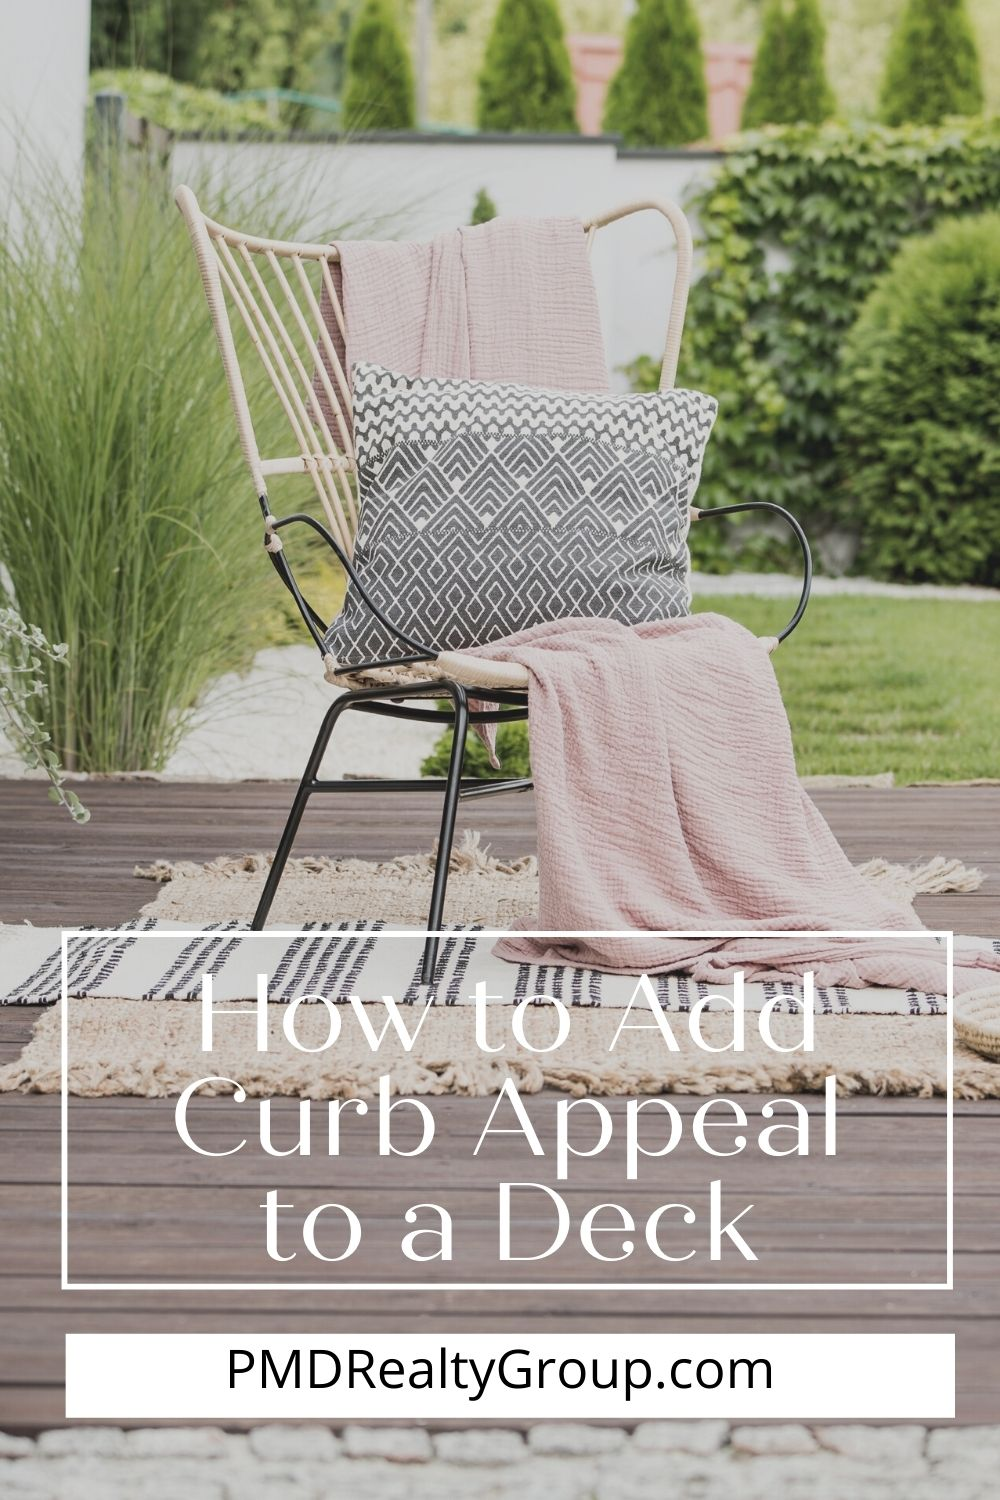 How to Add Curb Appeal to a Deck